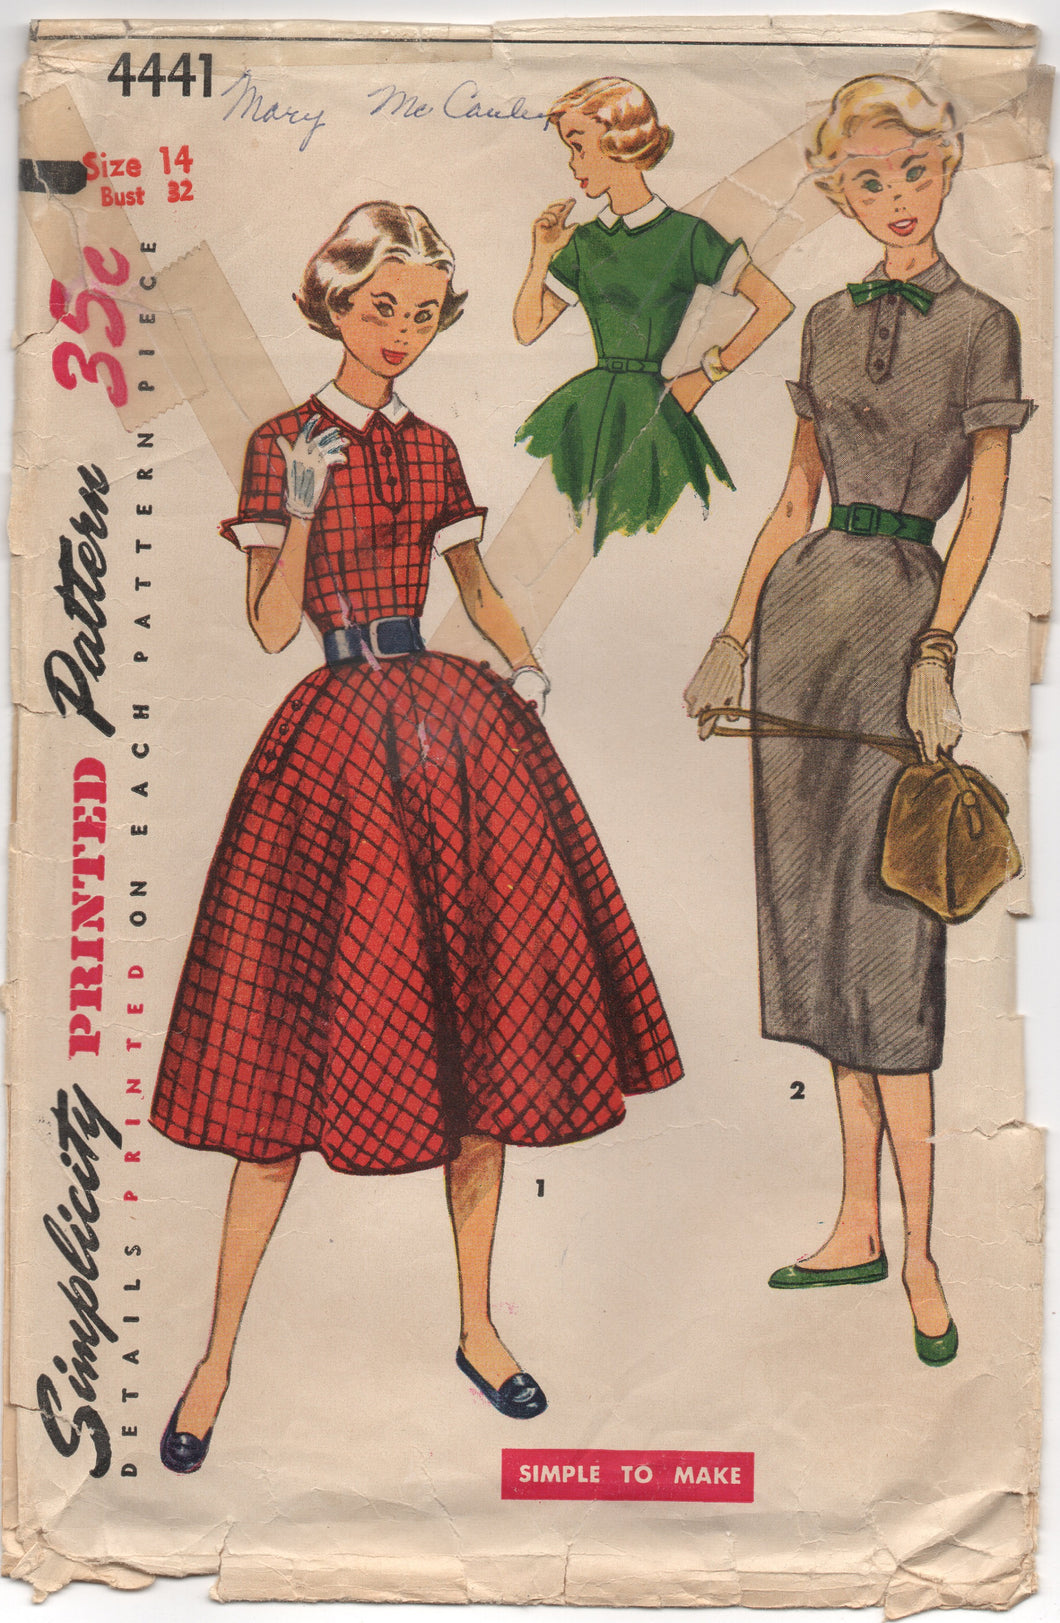 1950's Simplicity One Piece Dress with Full or Slim Skirt and Collar and Cuffs - Bust 32